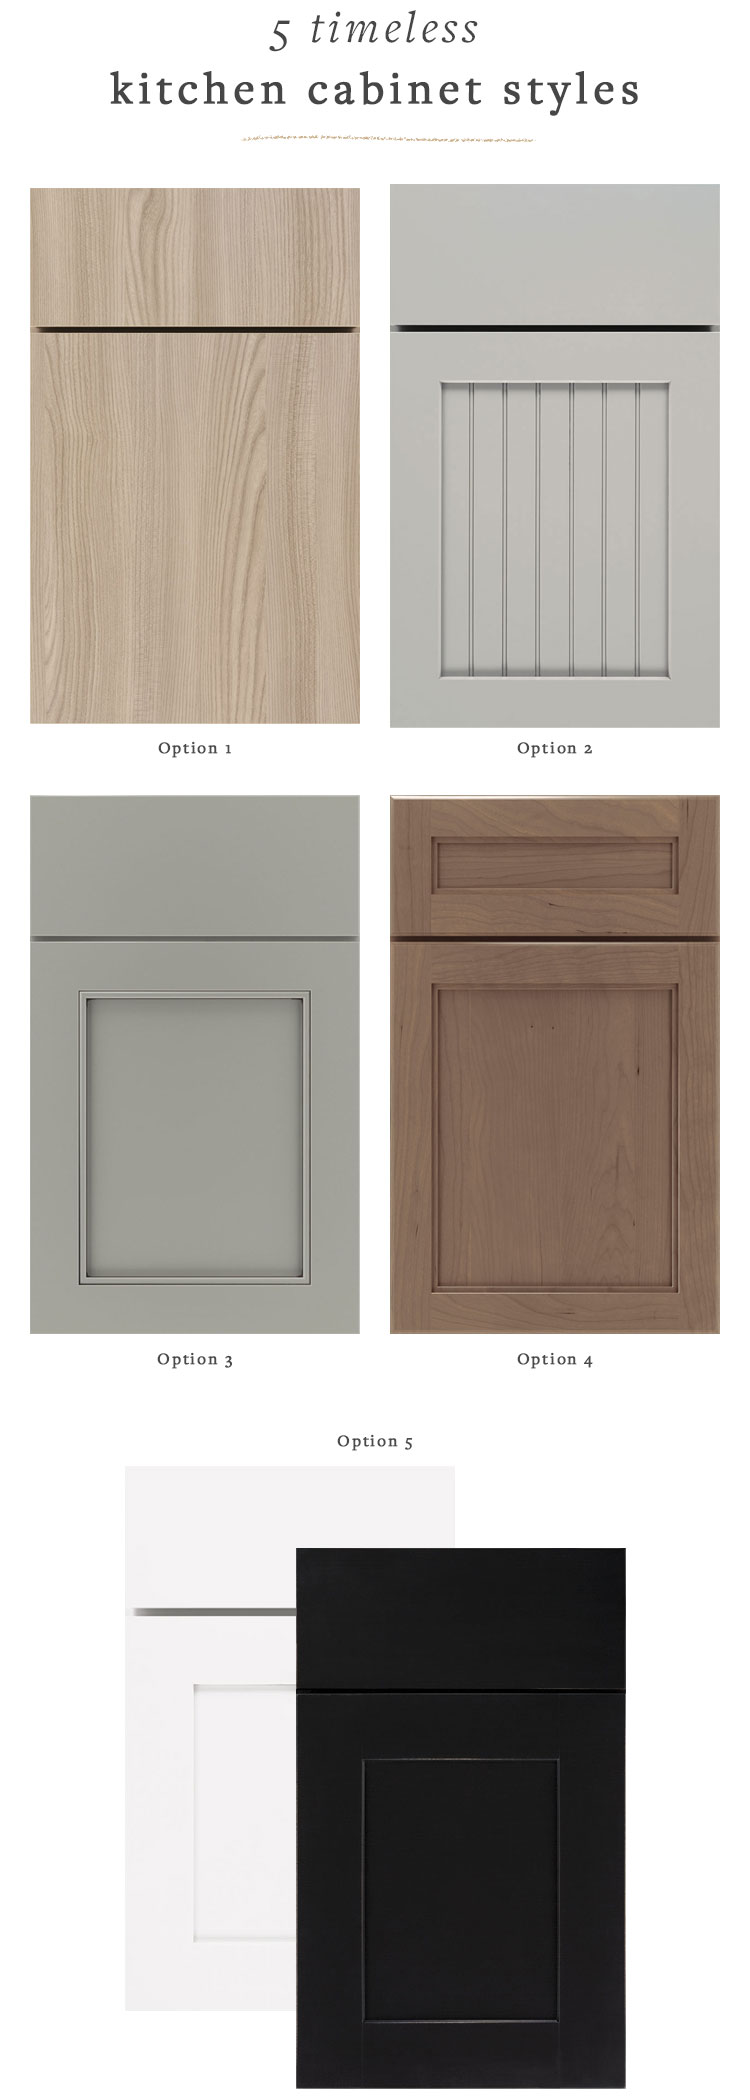 Our Renovation Kitchen Cabinet Door Styles That Will